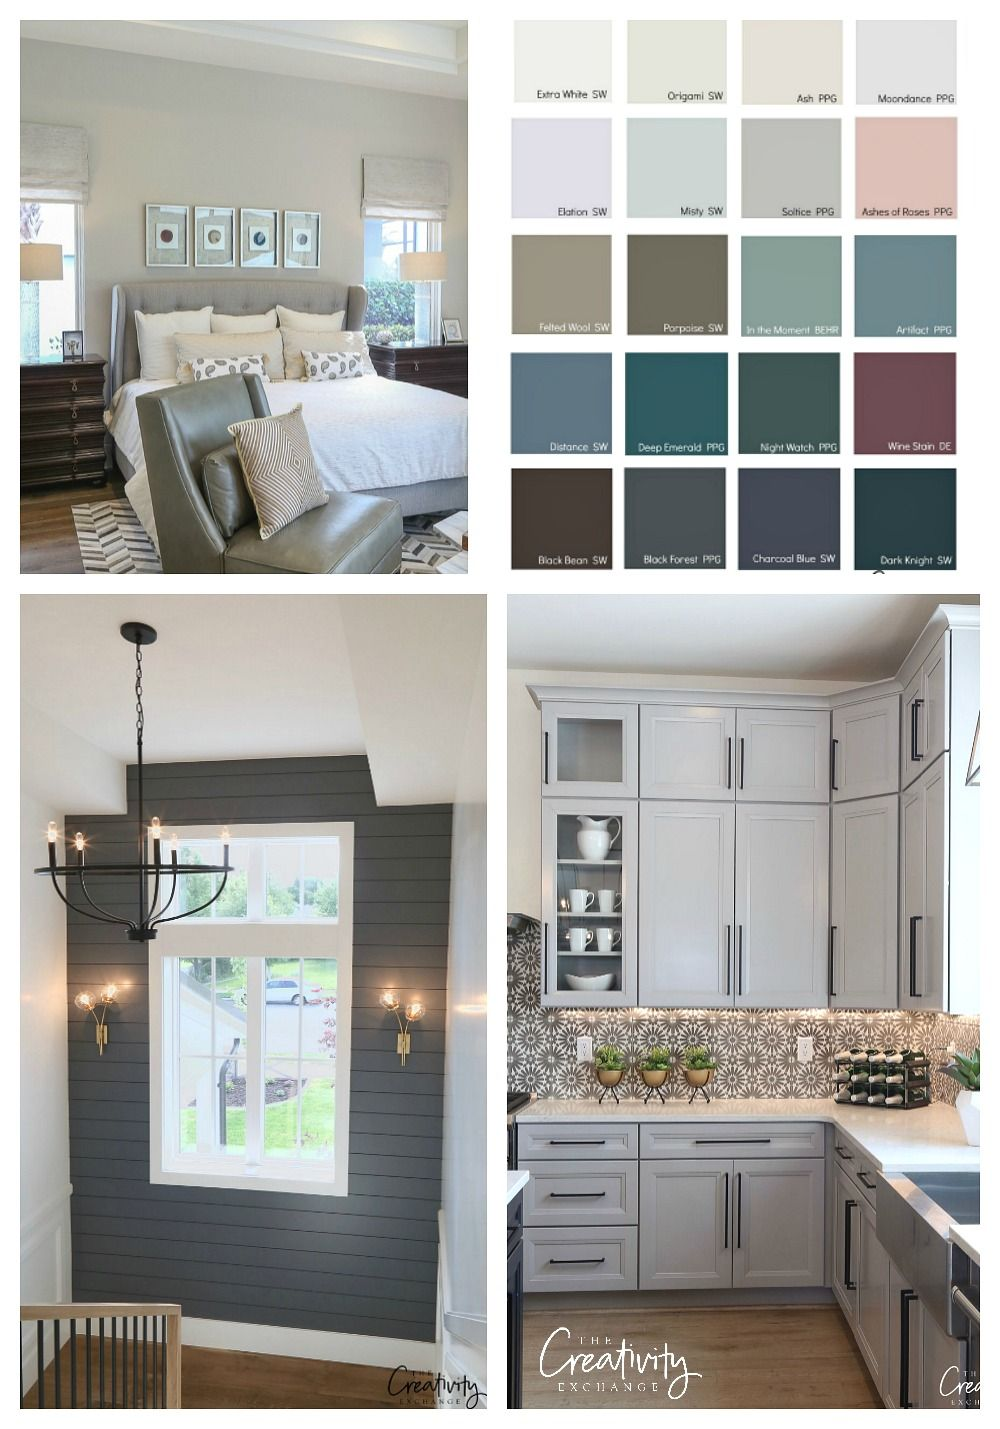 2019 Paint Color Trends And Forecasts Trending Paint Colors Bedroom Paint Colors Paint Colors For Home